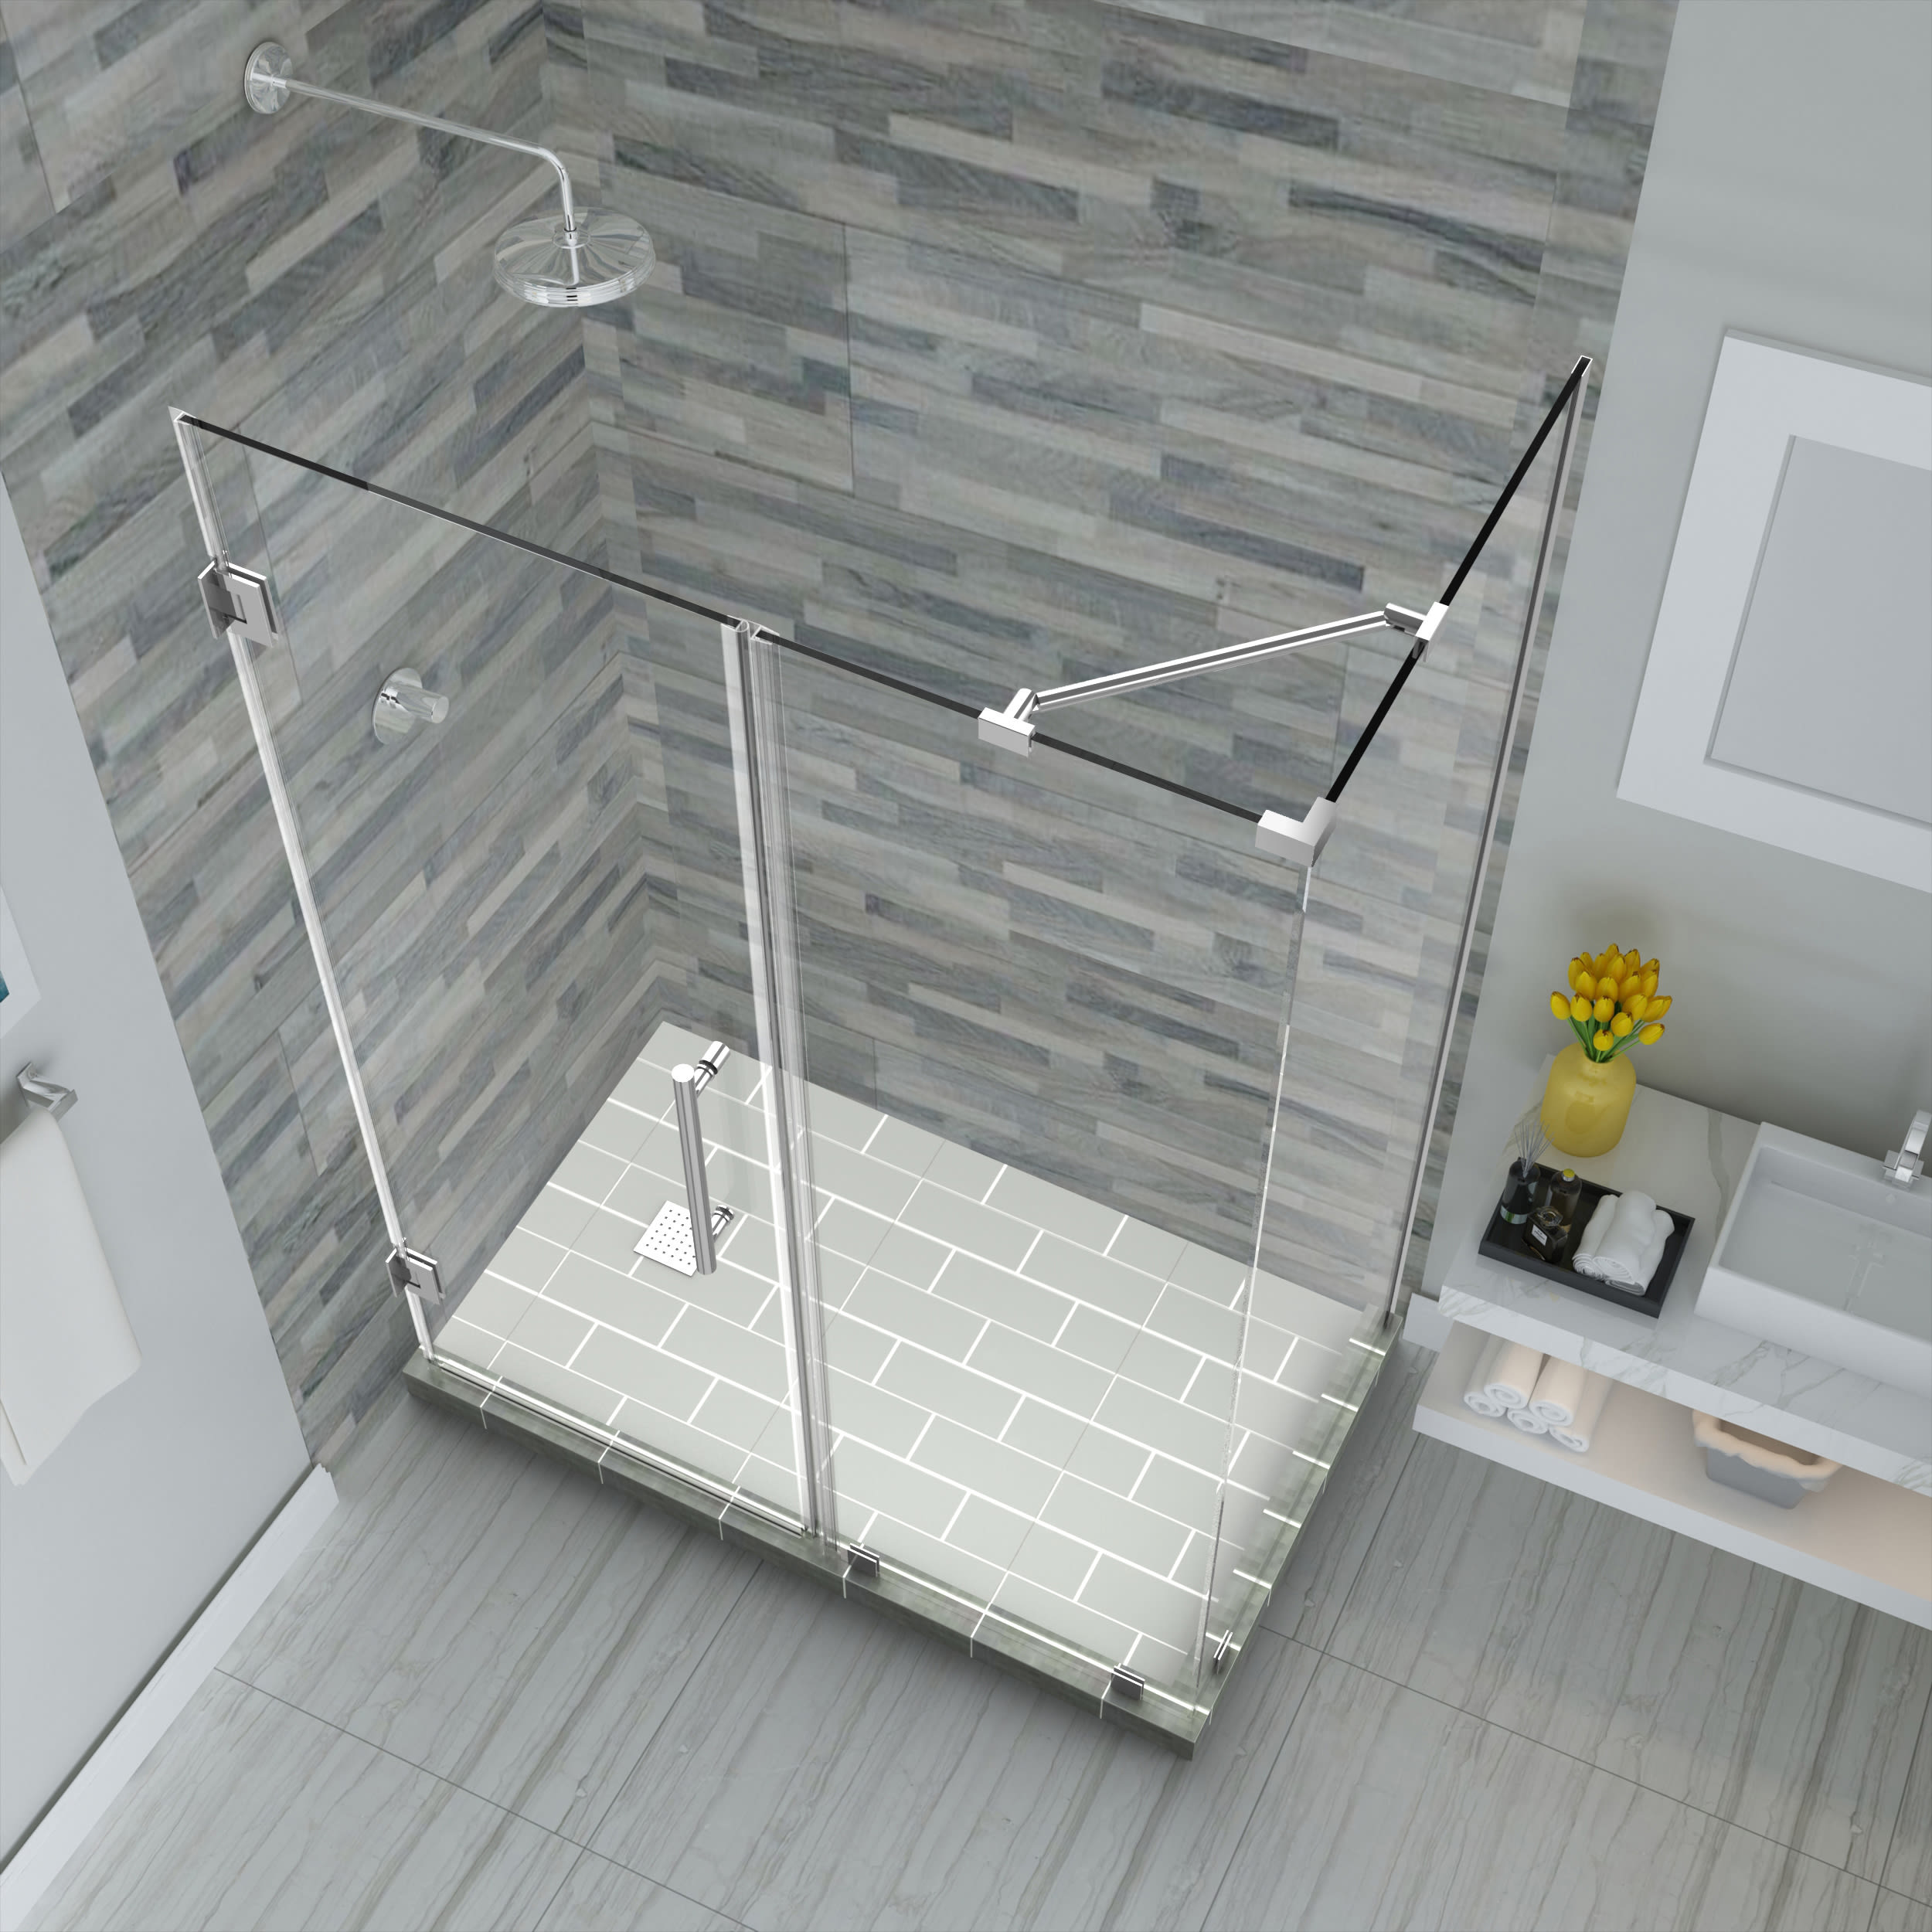 Aston Sen967ez Ch 542432 10 Chrome Bromley 72 High X 54 Wide X 32 Deep Hinged Frameless Shower Enclosure With 24 Door Width And Clear Glass Faucetdirect Com